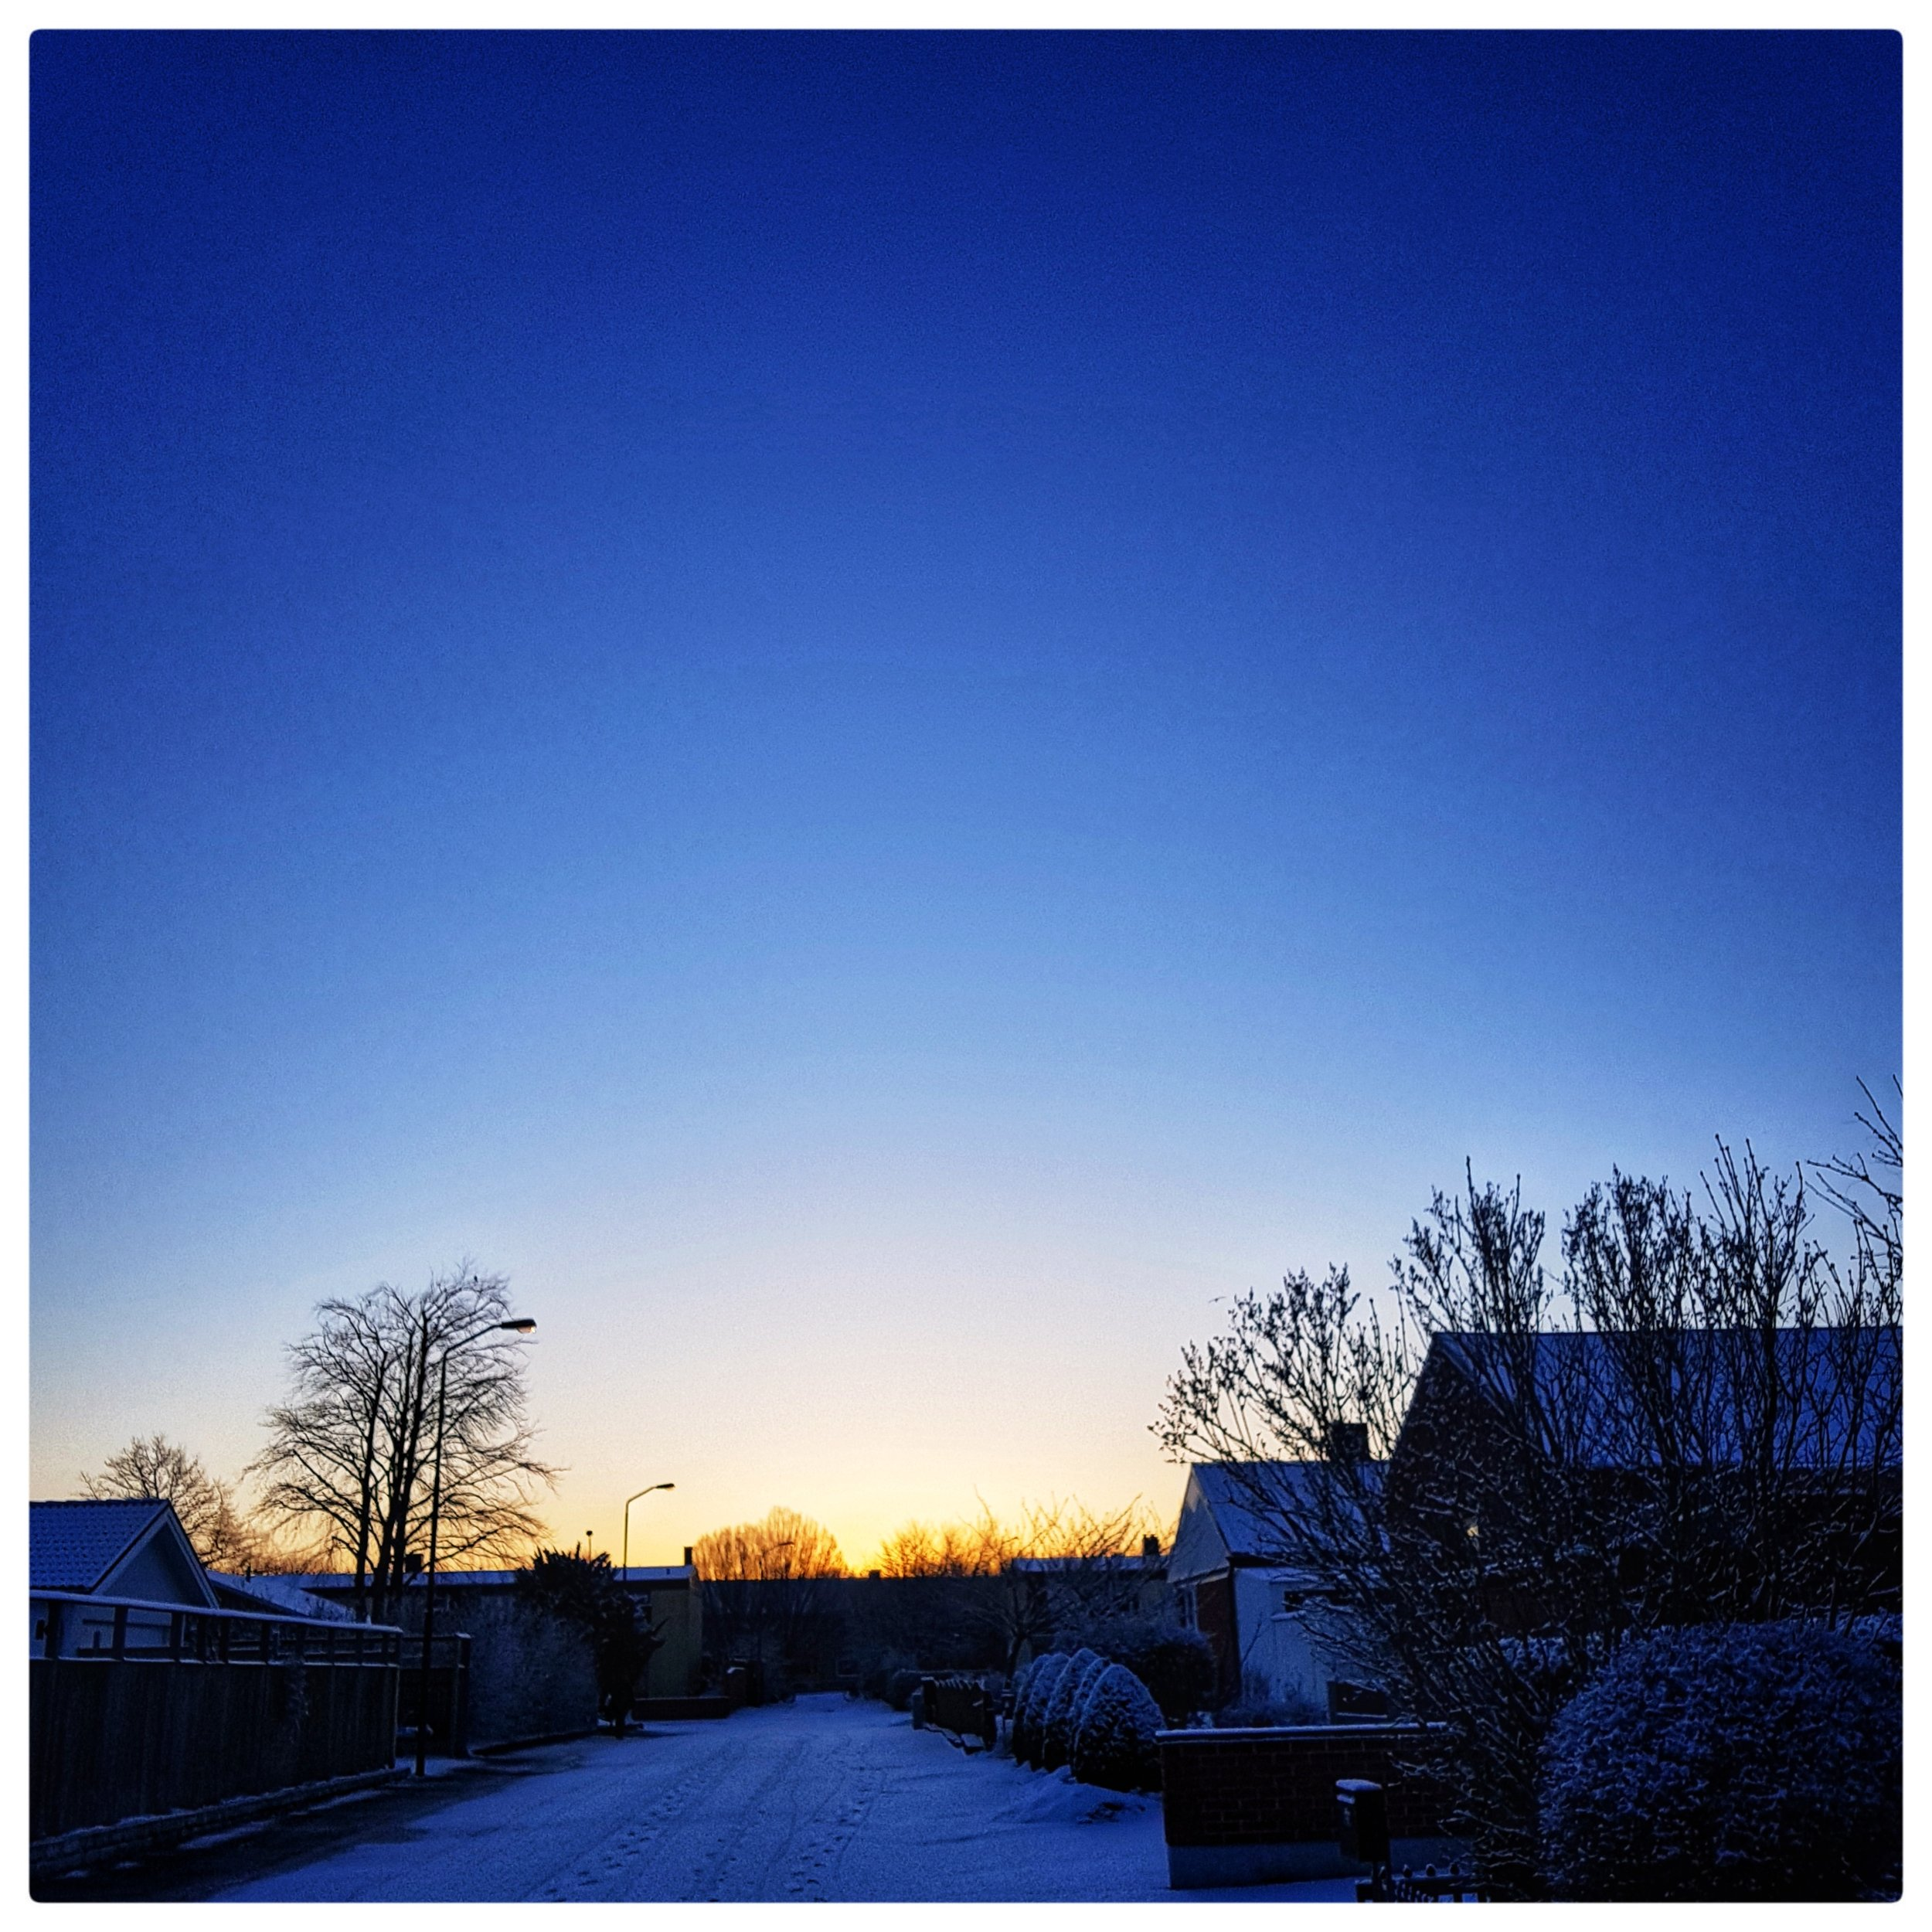 March 20 - Day 79: First Light